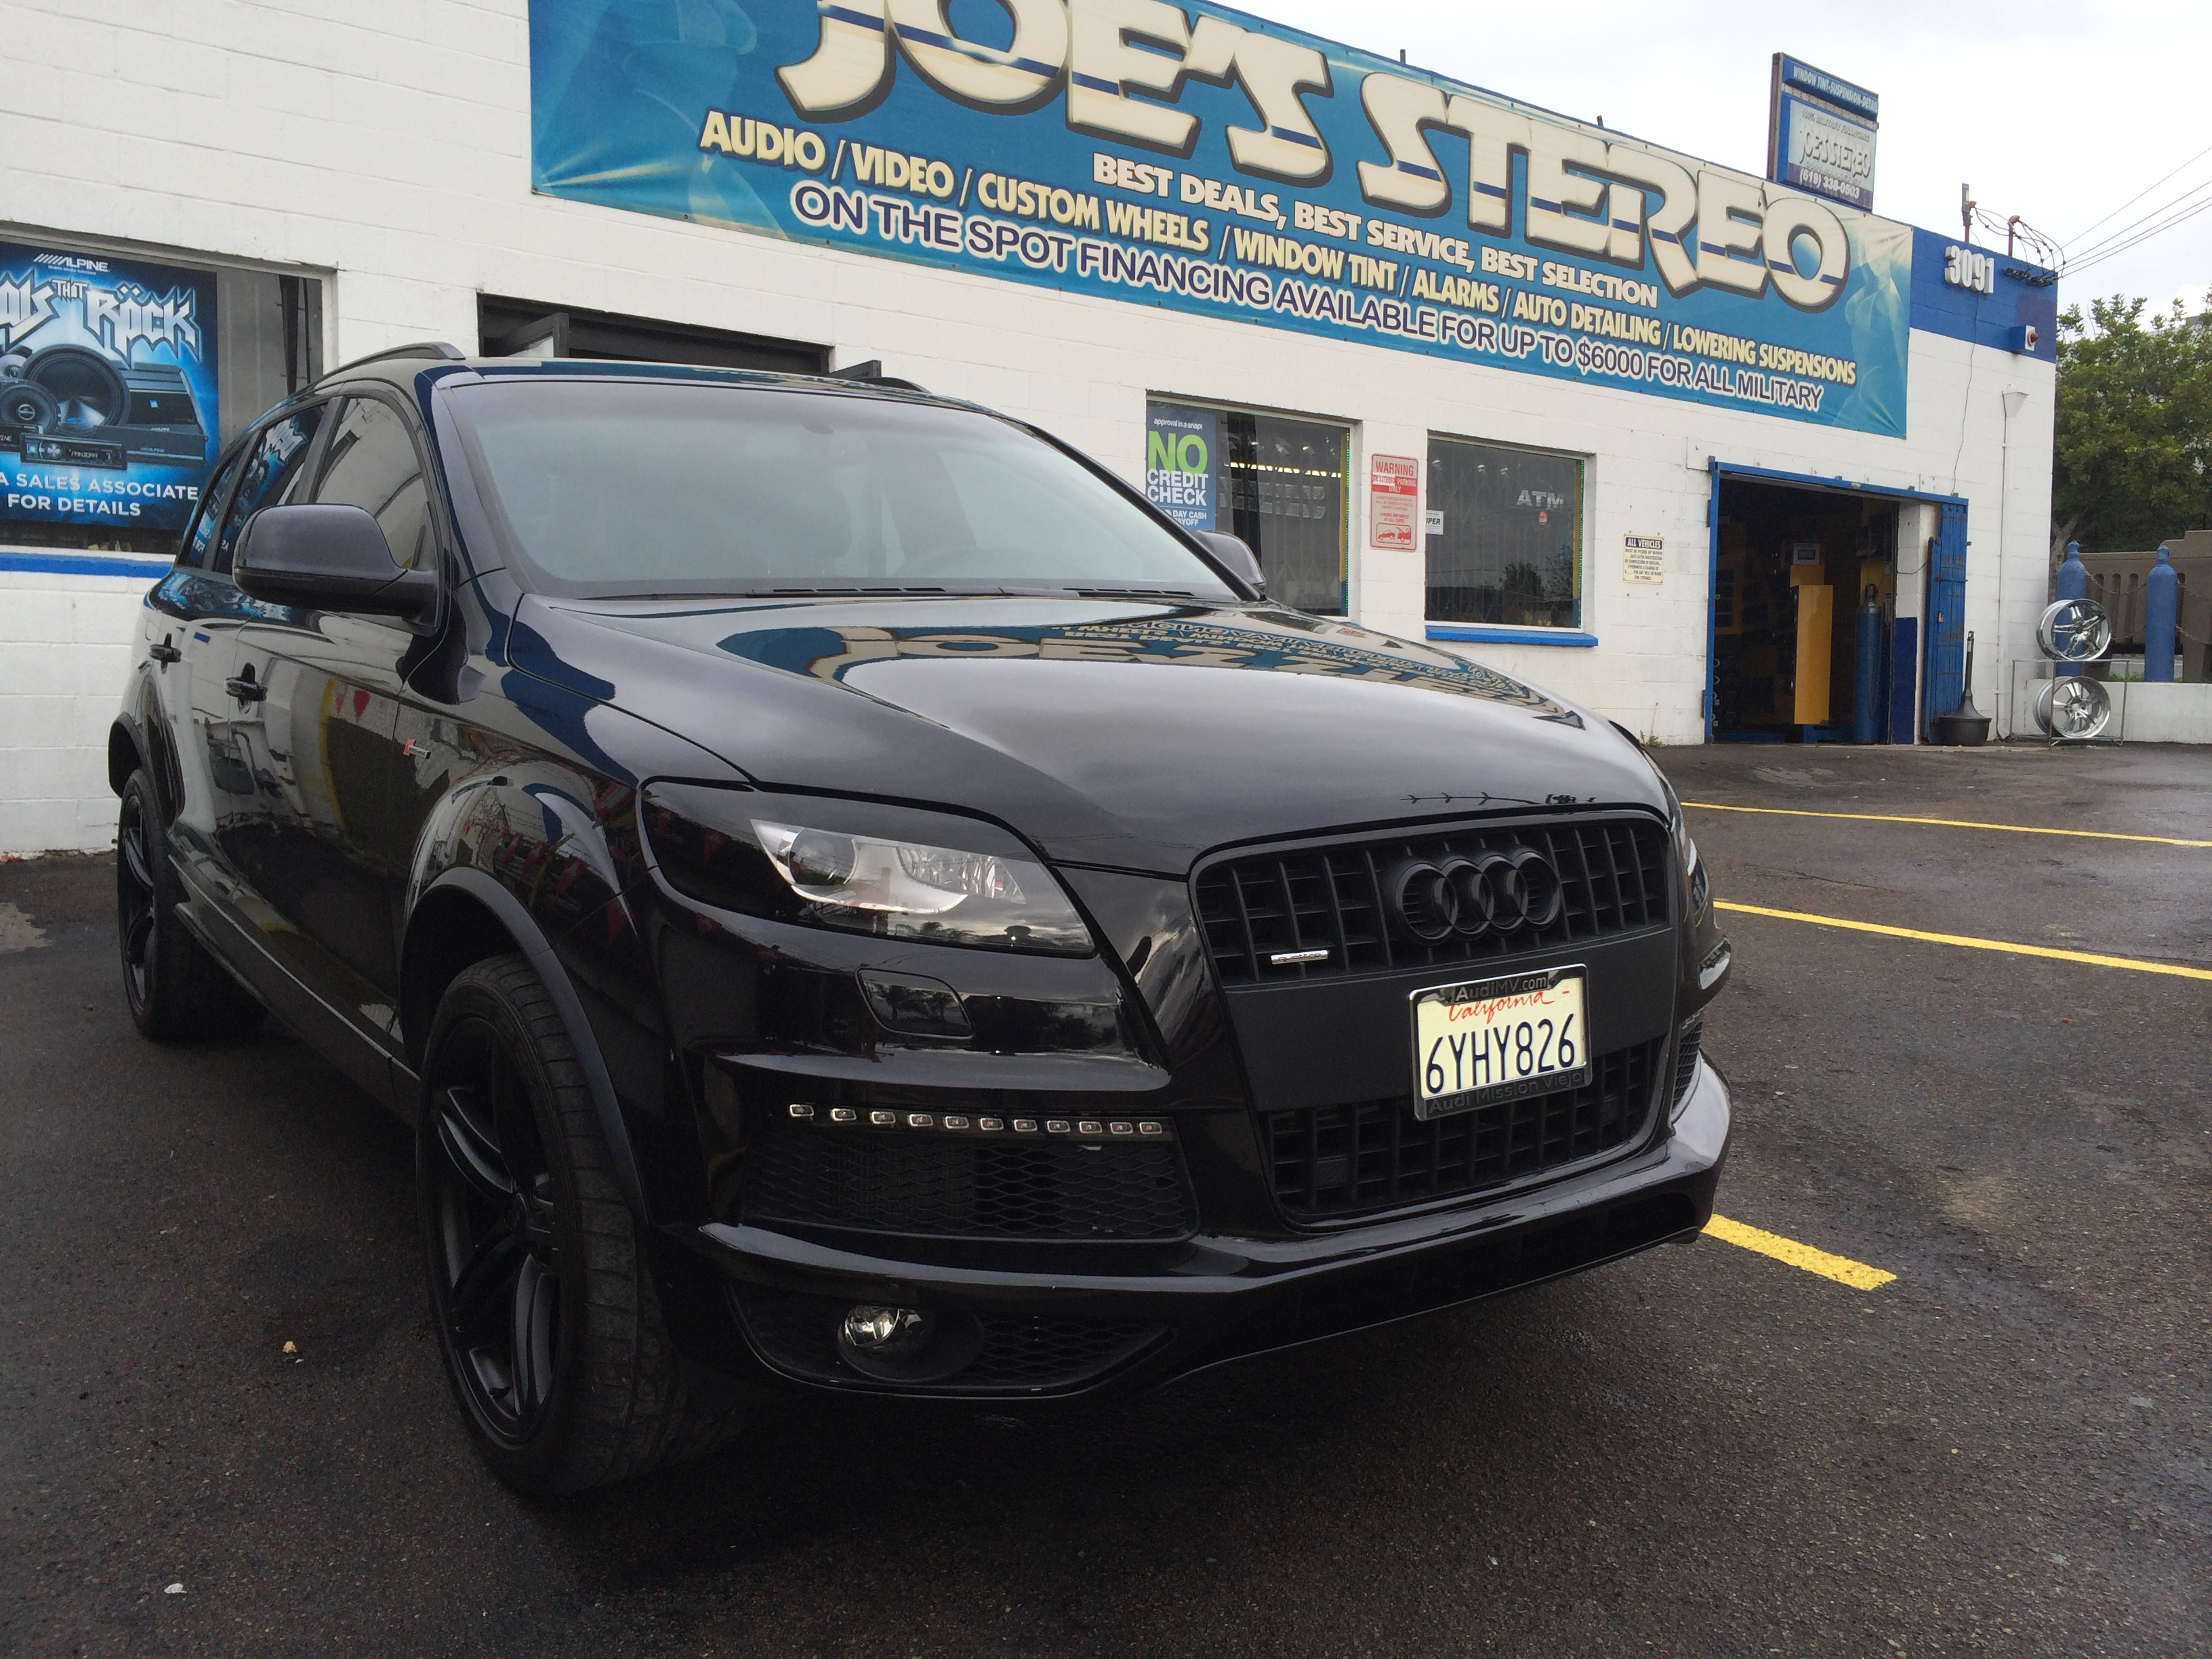 Audi Q7 blacked out | Joe's Stereo